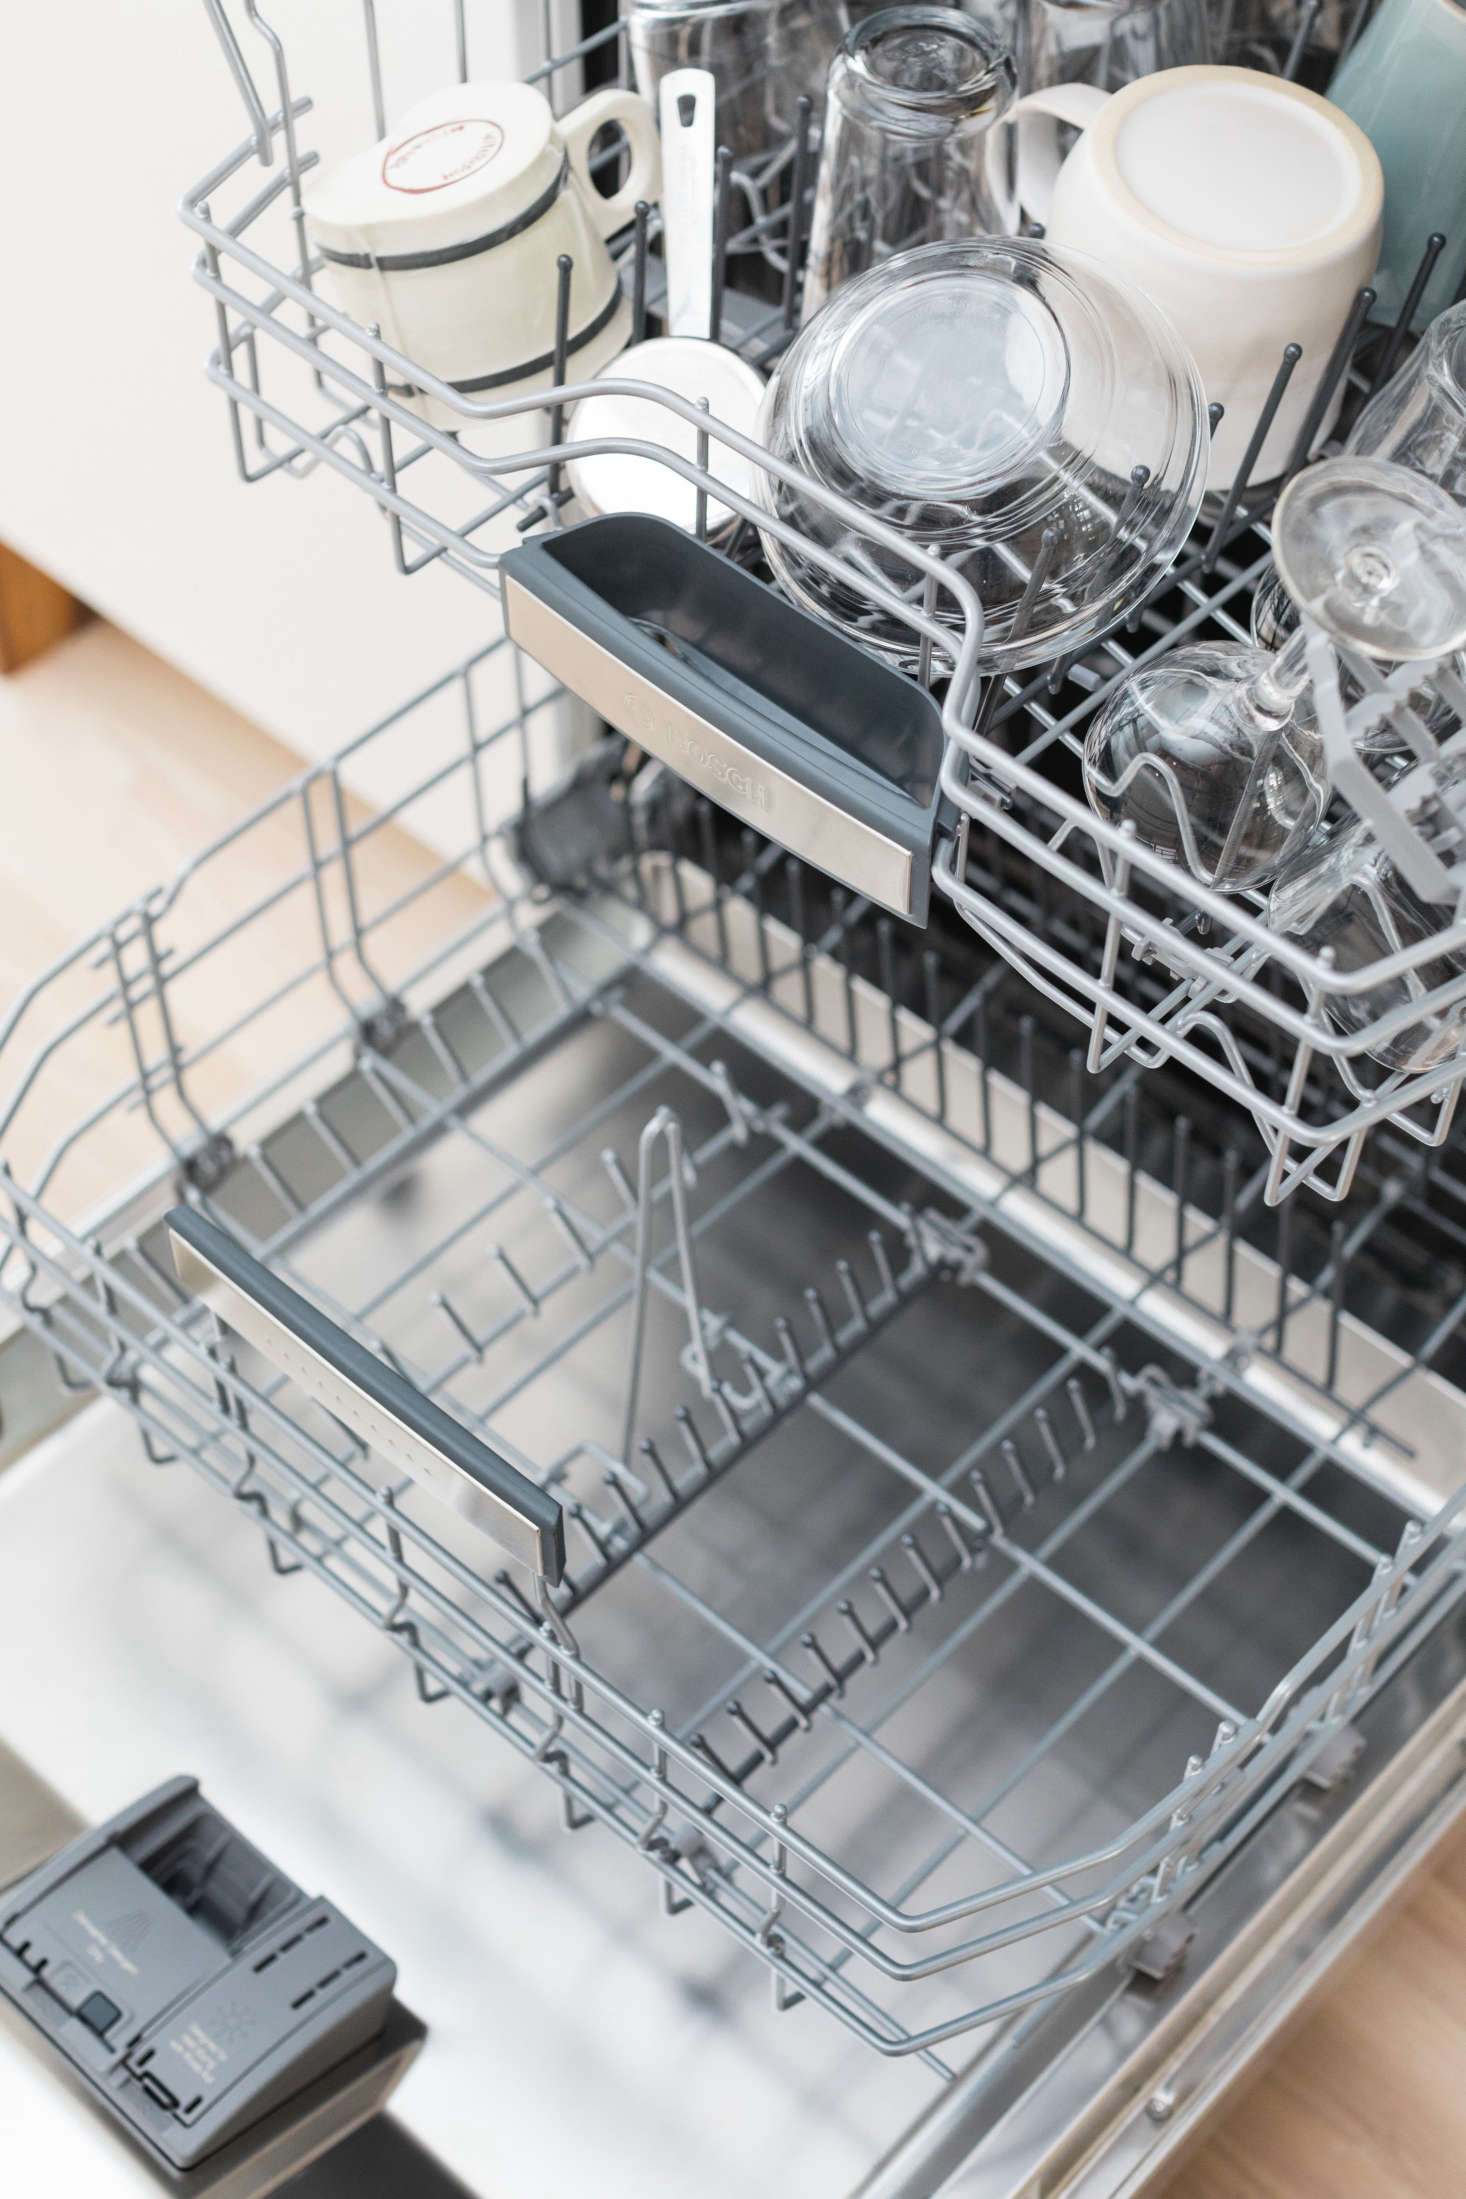 Water can pool on the bottom of cups and bowls on the top and middle racks. To avoid water drops from getting on the dry dishes below, unload the bottom rack first.